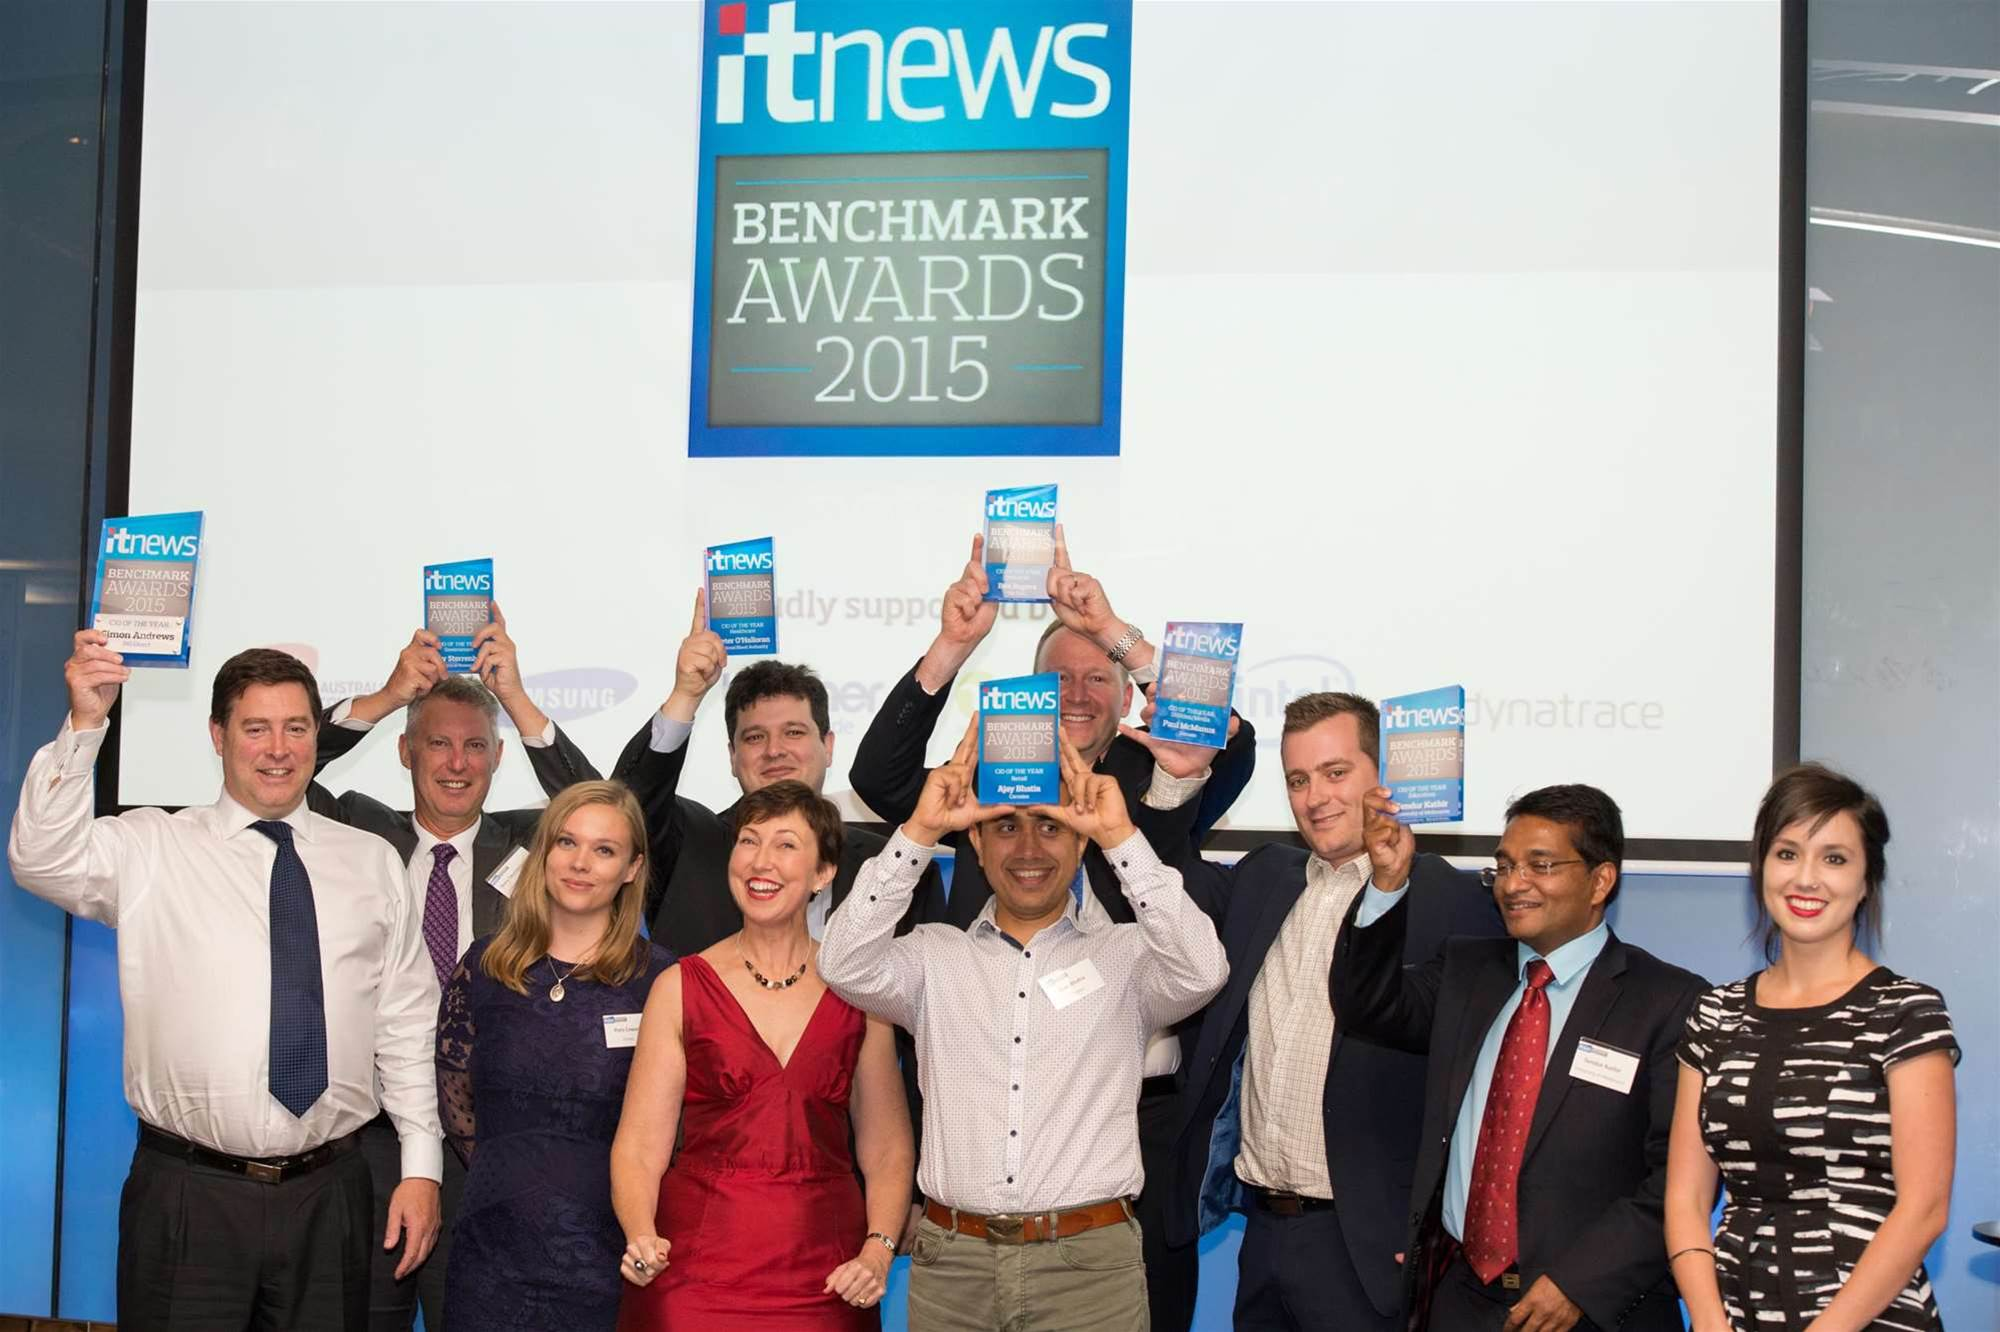 Photos: The 2015 iTnews Benchmark Awards